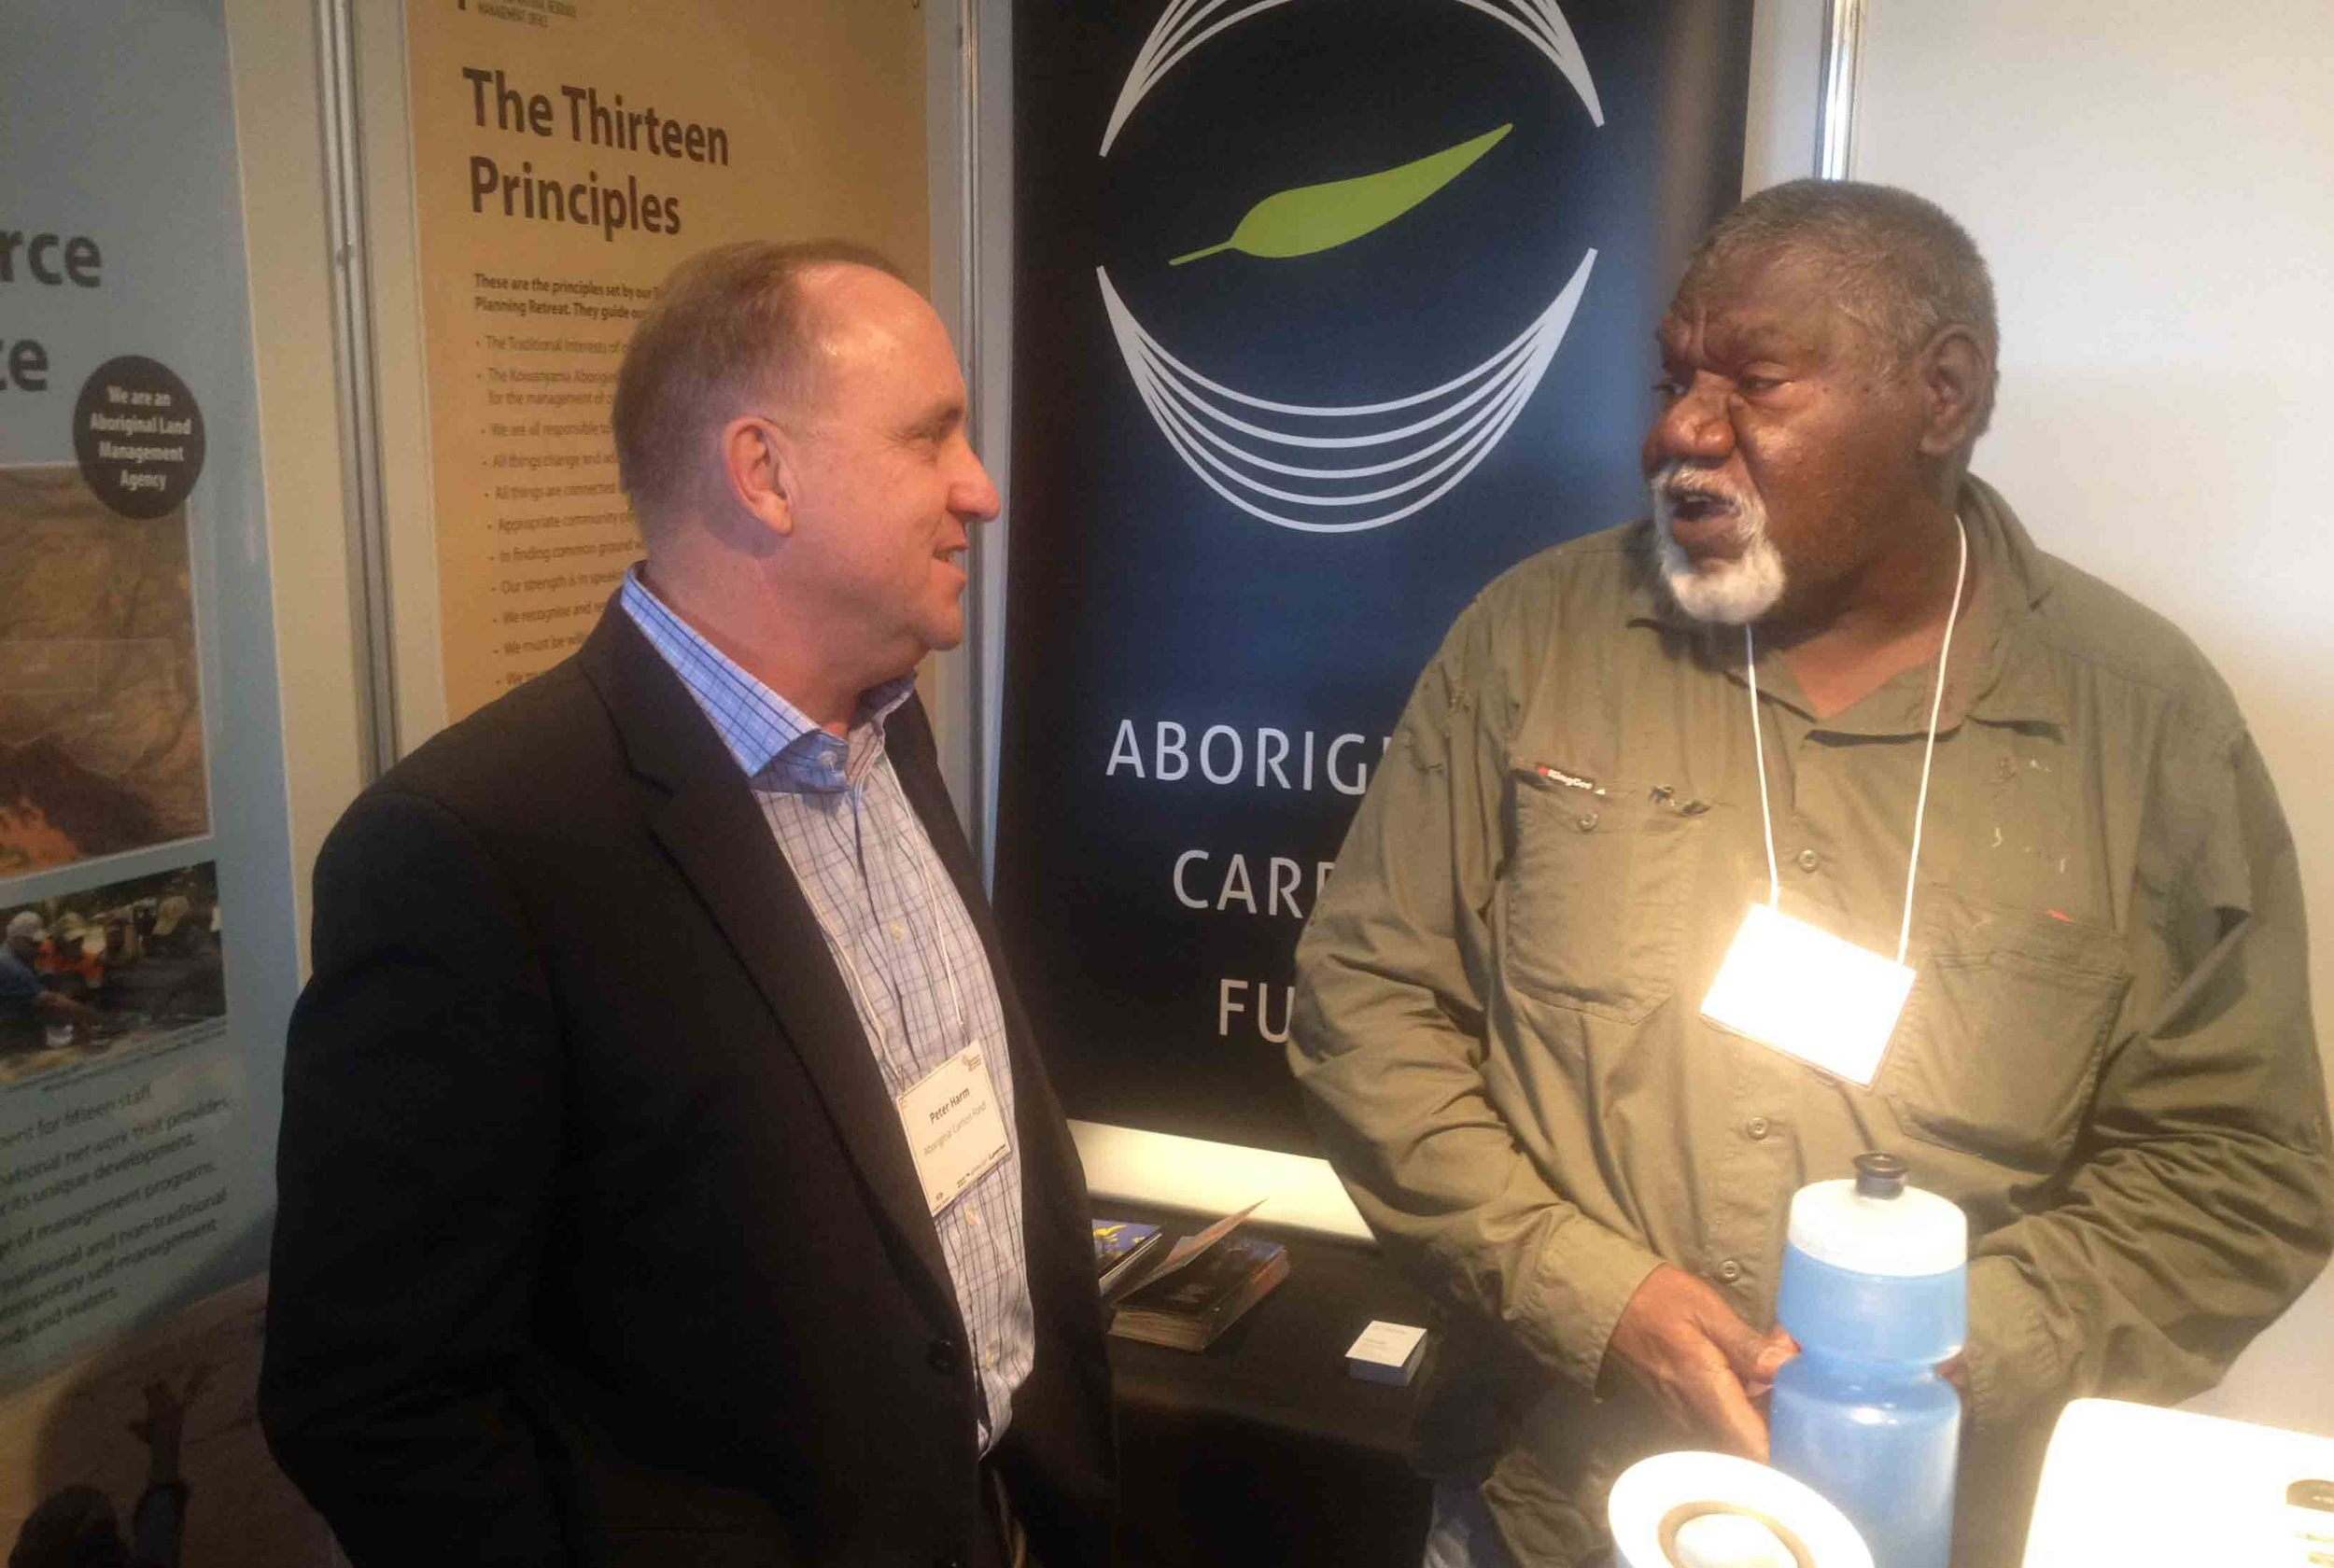 Peter and John talking under the brights of the Aboriginal Carbon Fund stall